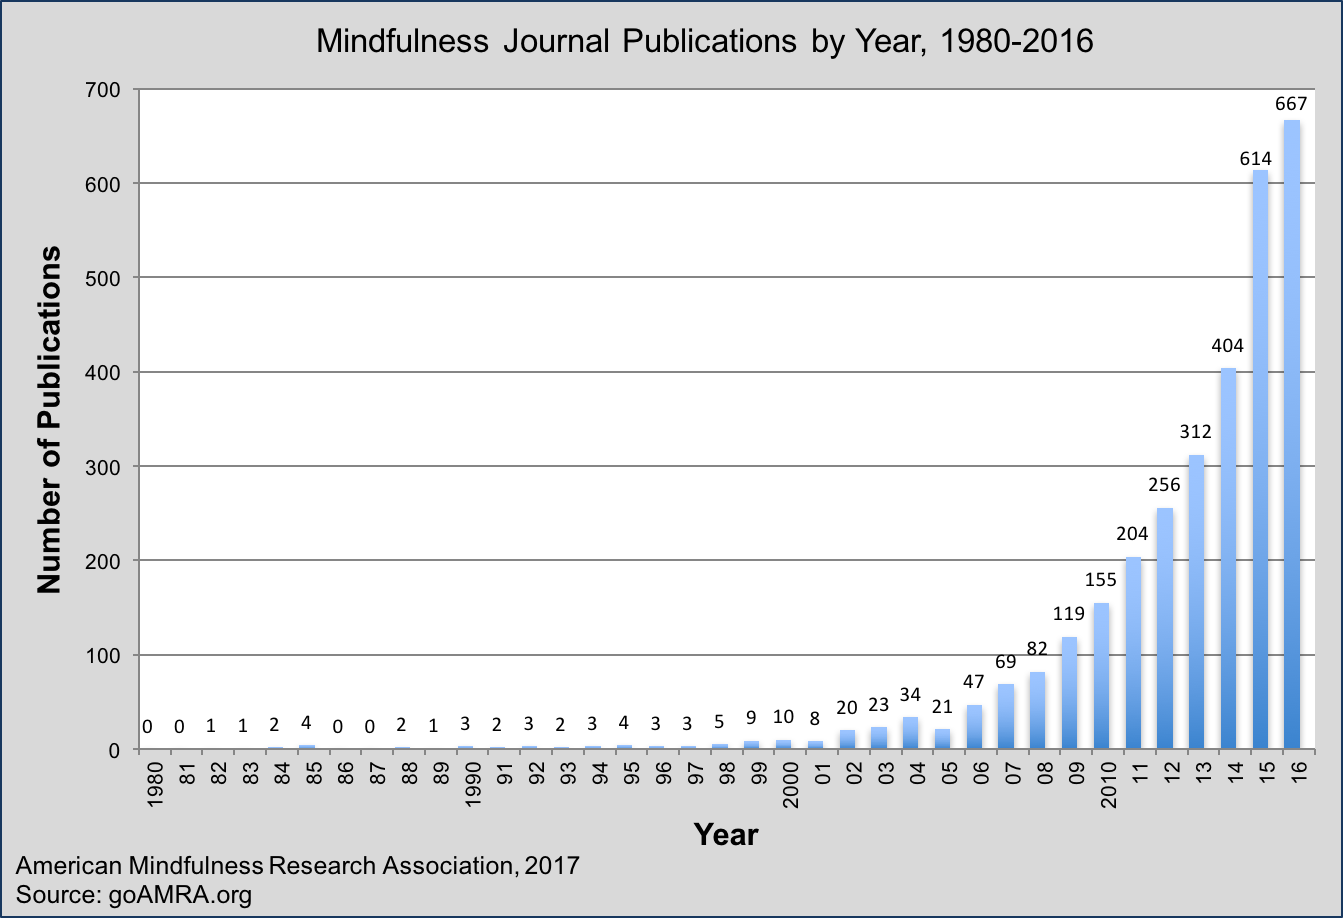 Image showing a graph of Mindfulness Jounal Publications from 1980 - 2016 indicating the increase in publication numbers.